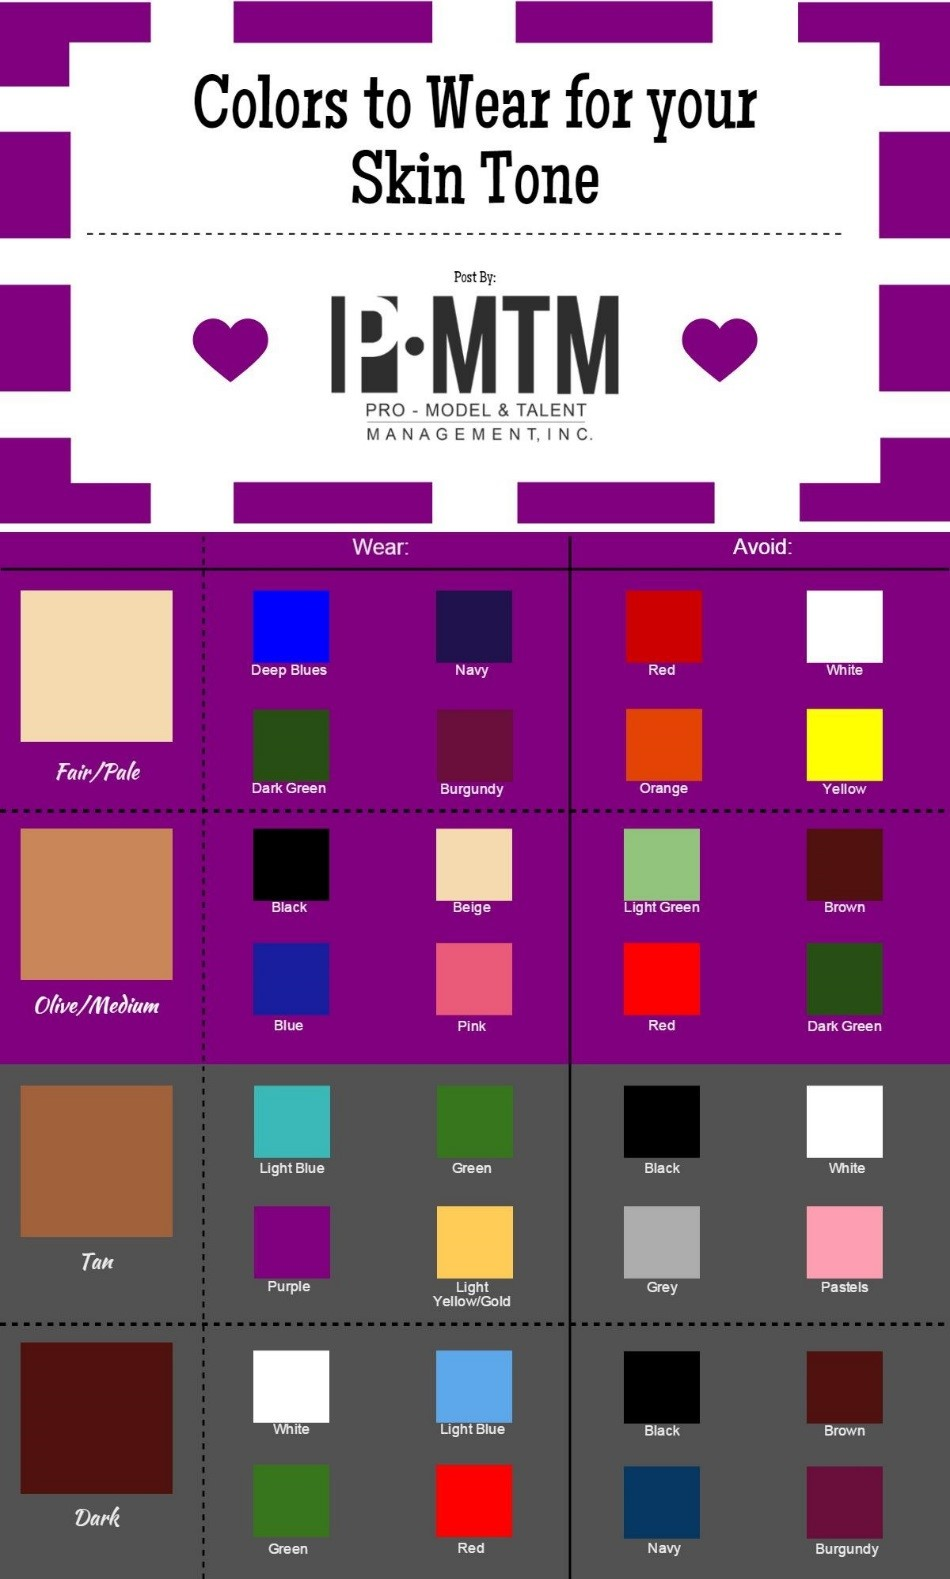 PMTM: Colors to Wear for Your Skin Tone